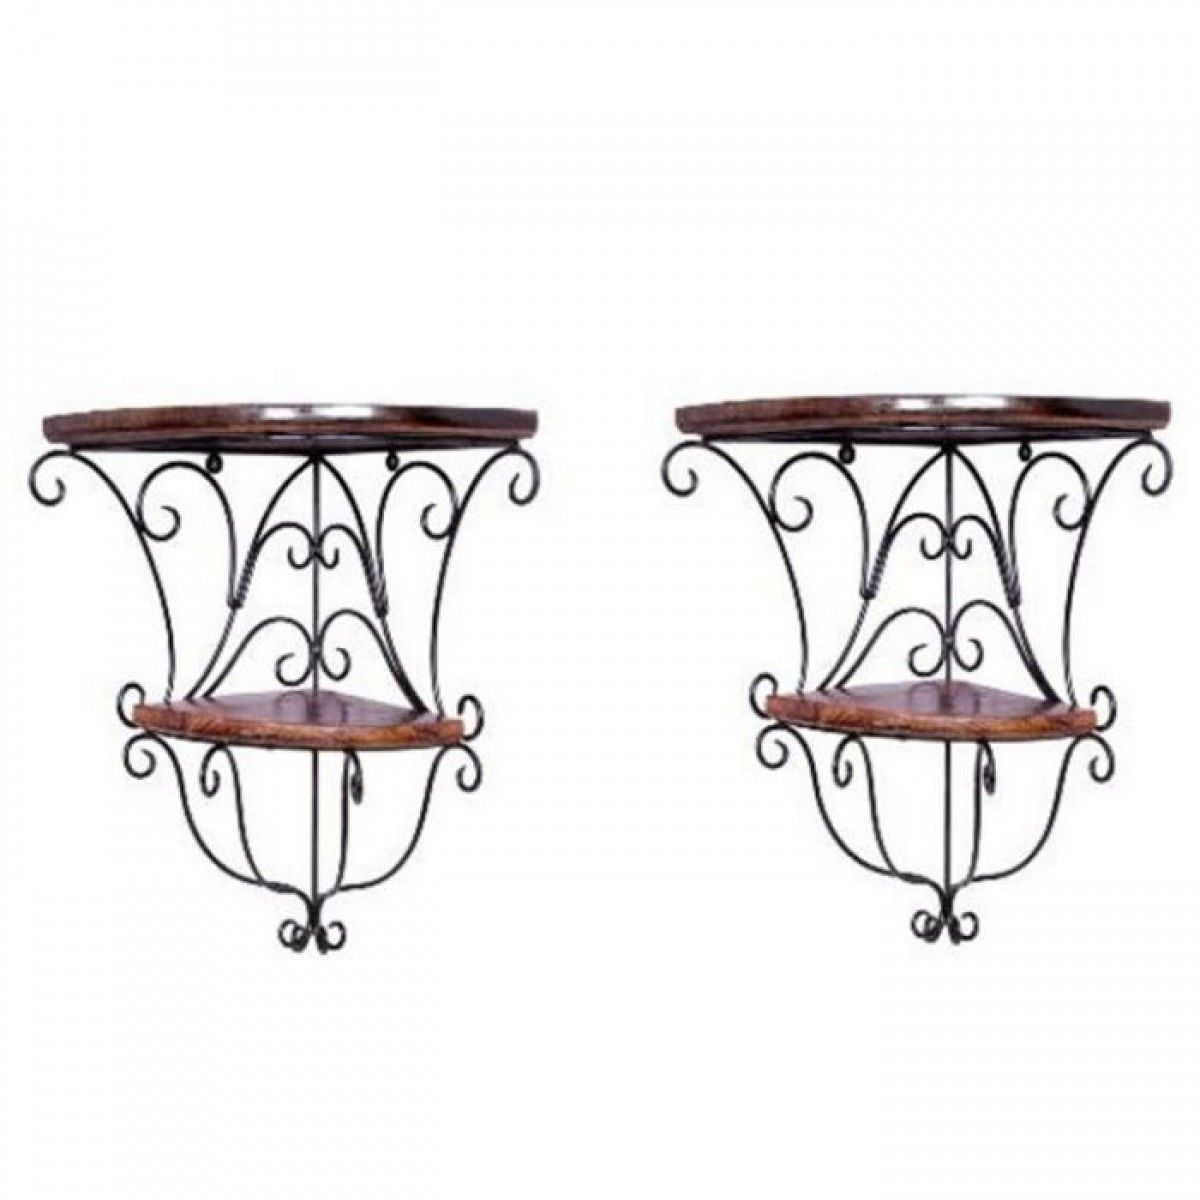 Onlineshoppee home decor wall hanging fancy double bracket wooden onlineshoppee home decor wall hanging fancy double bracket wooden iron wall shelf set of 2 wall shelves home decor home furniture amipublicfo Choice Image